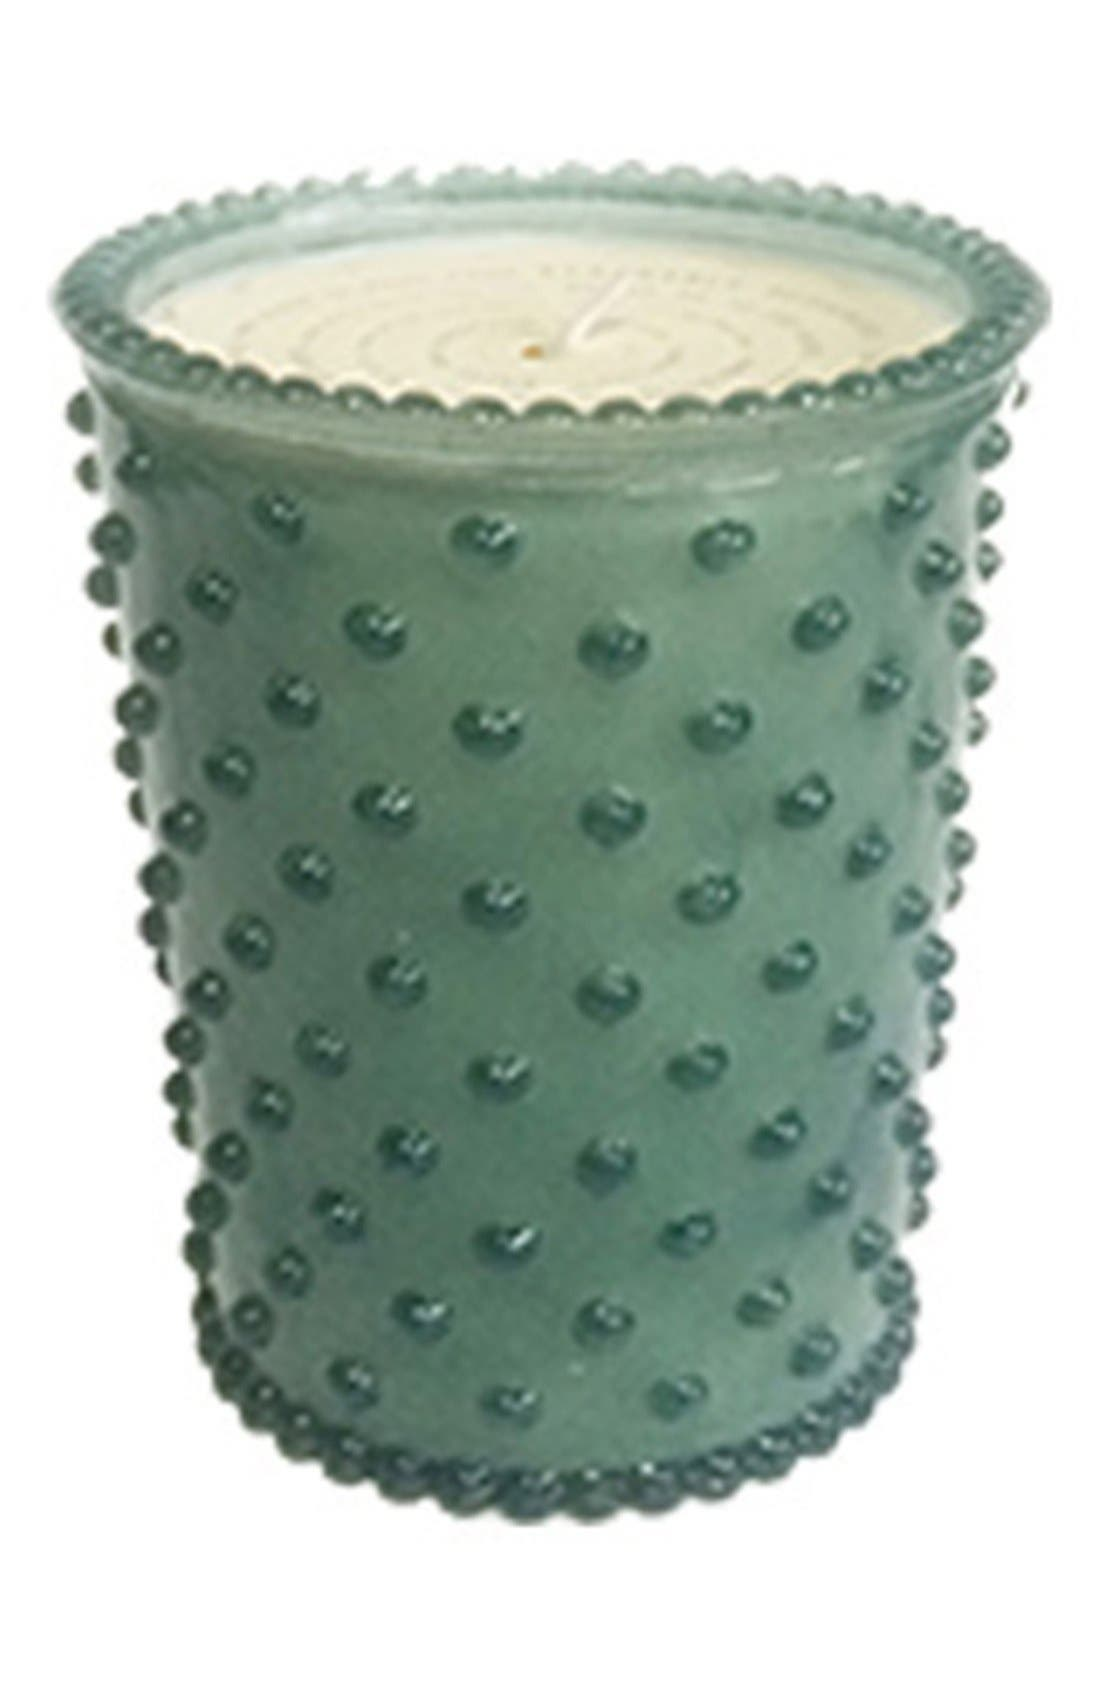 Alternate Image 1 Selected - Simpatico Hobnail Glass Candle